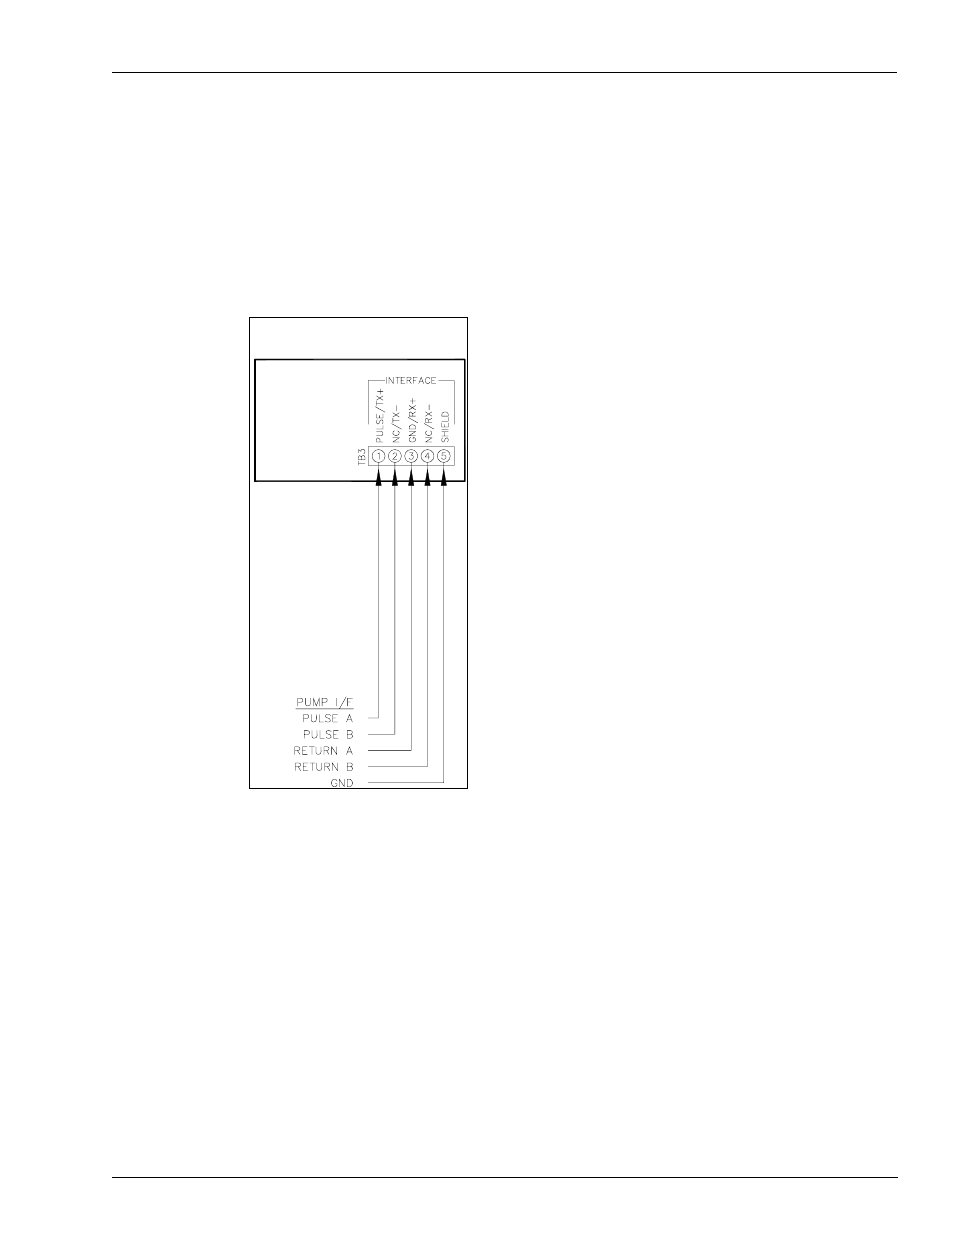 Jumpers jp4 and jp5   Gasboy 9820 User Manual   Page 9 / 10